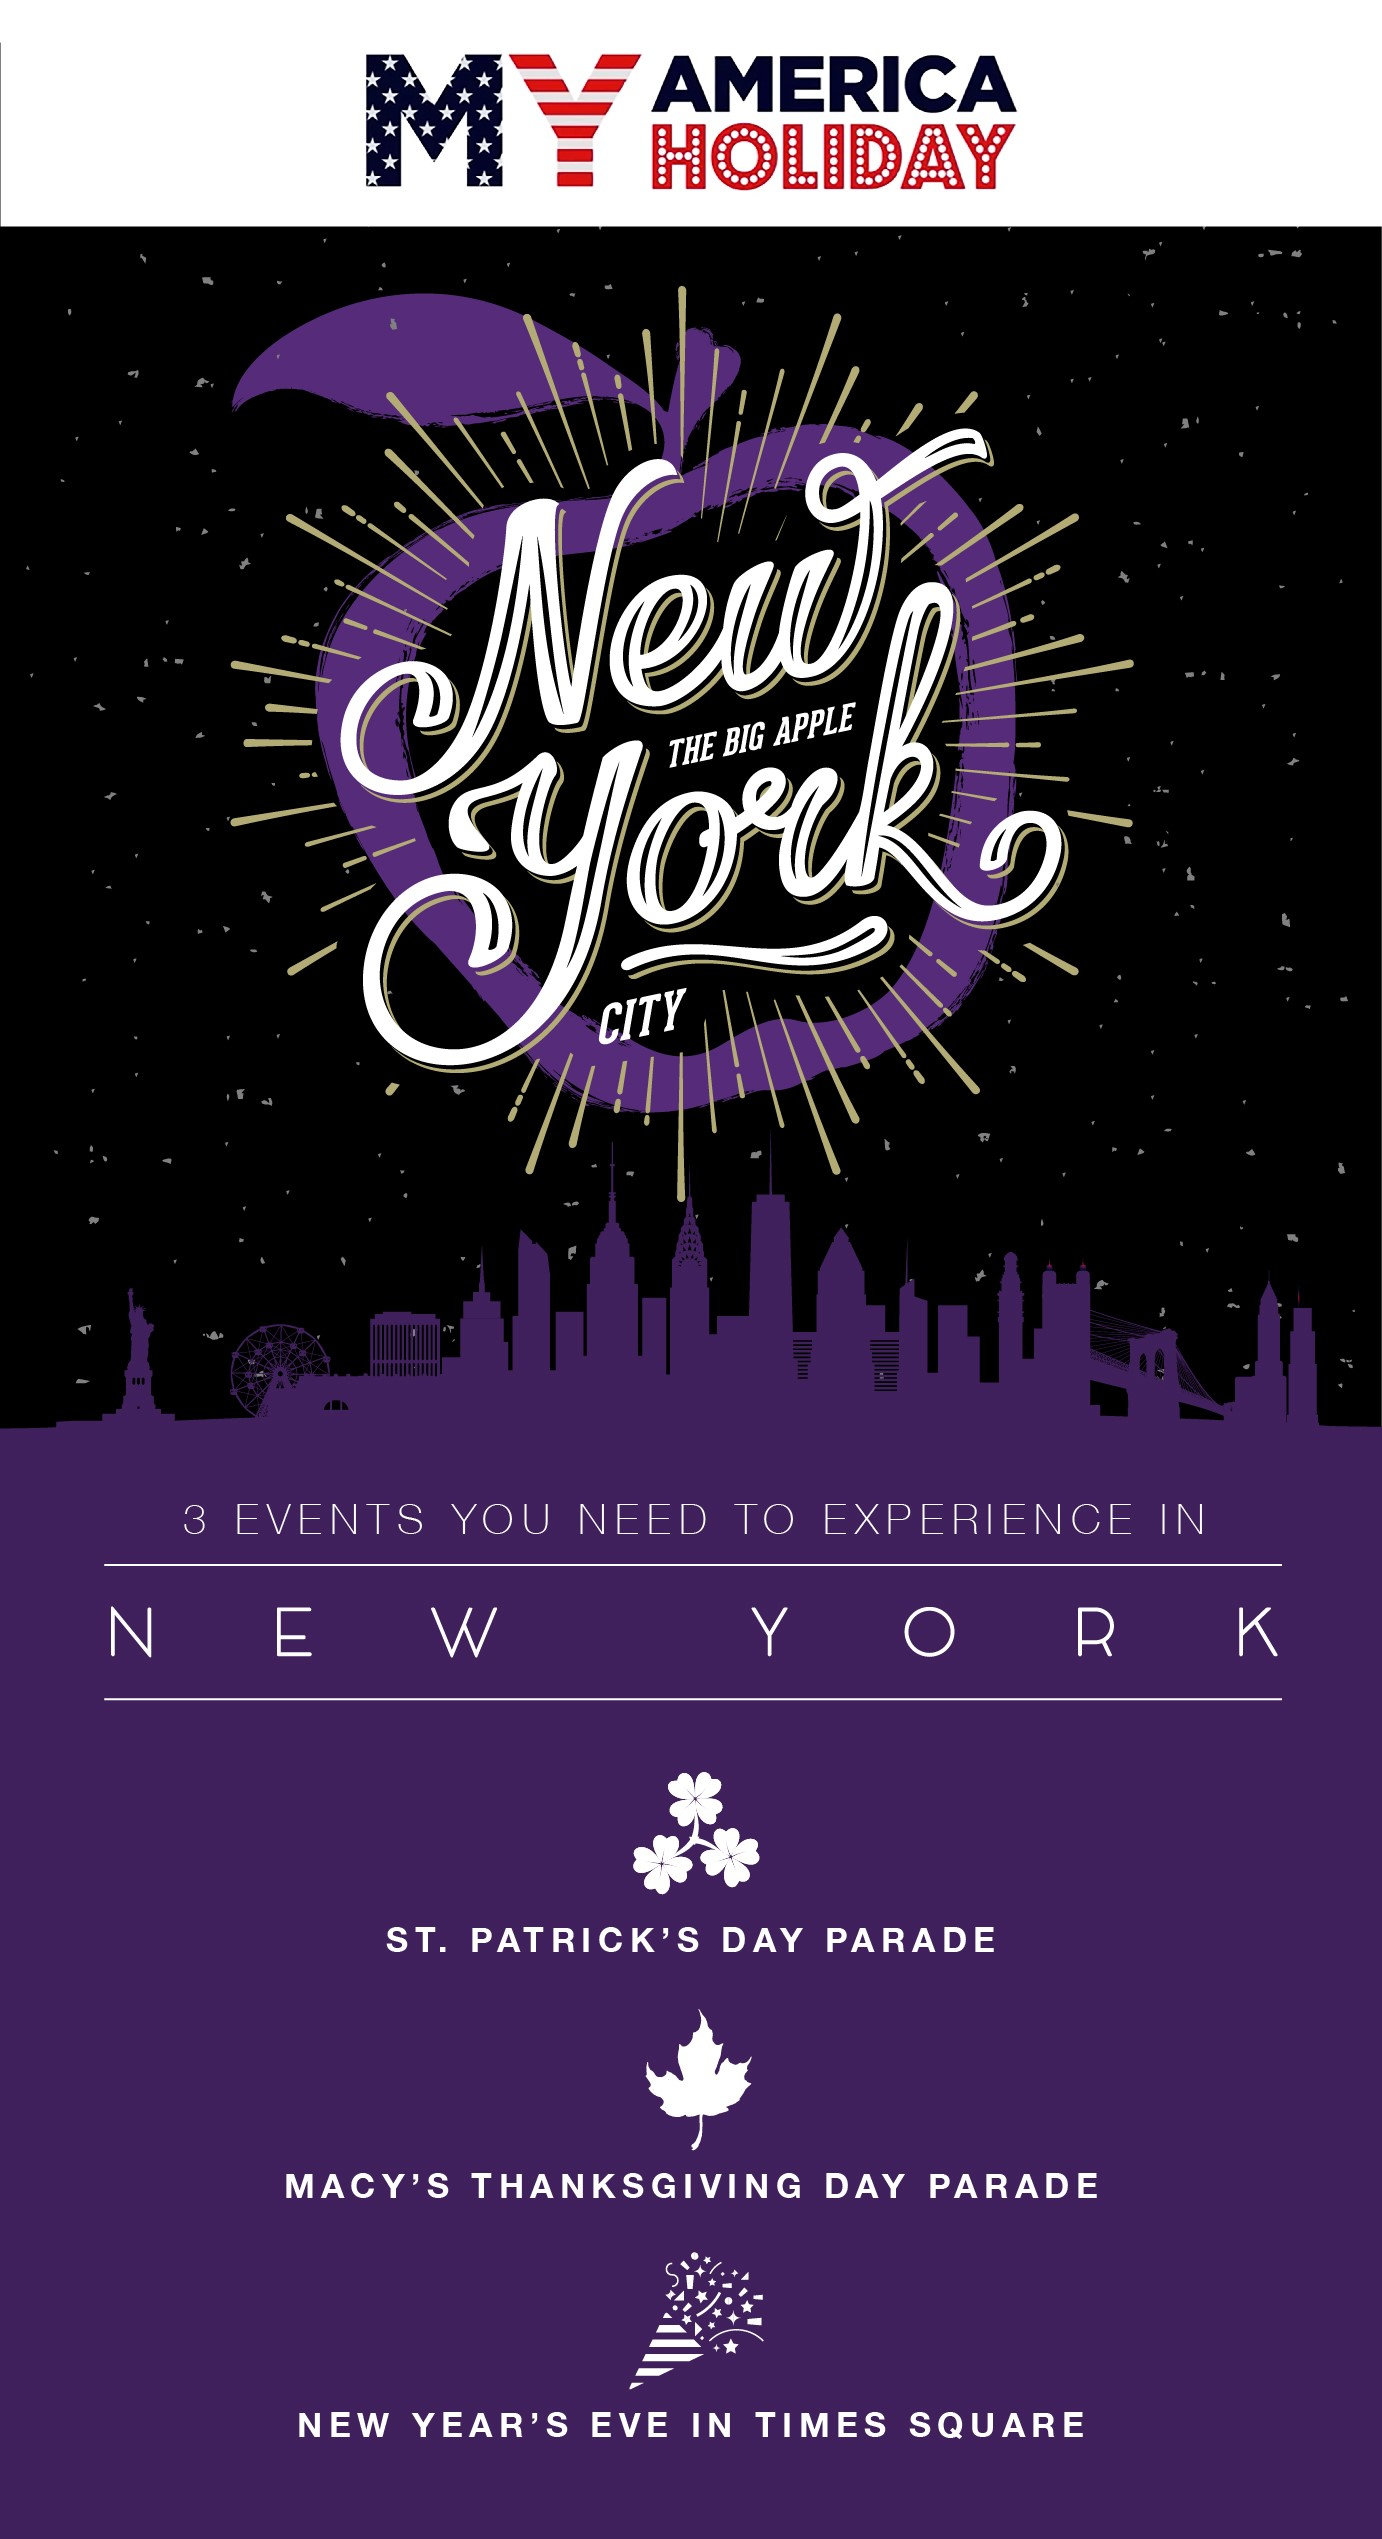 3 New York Events You Need To Experience